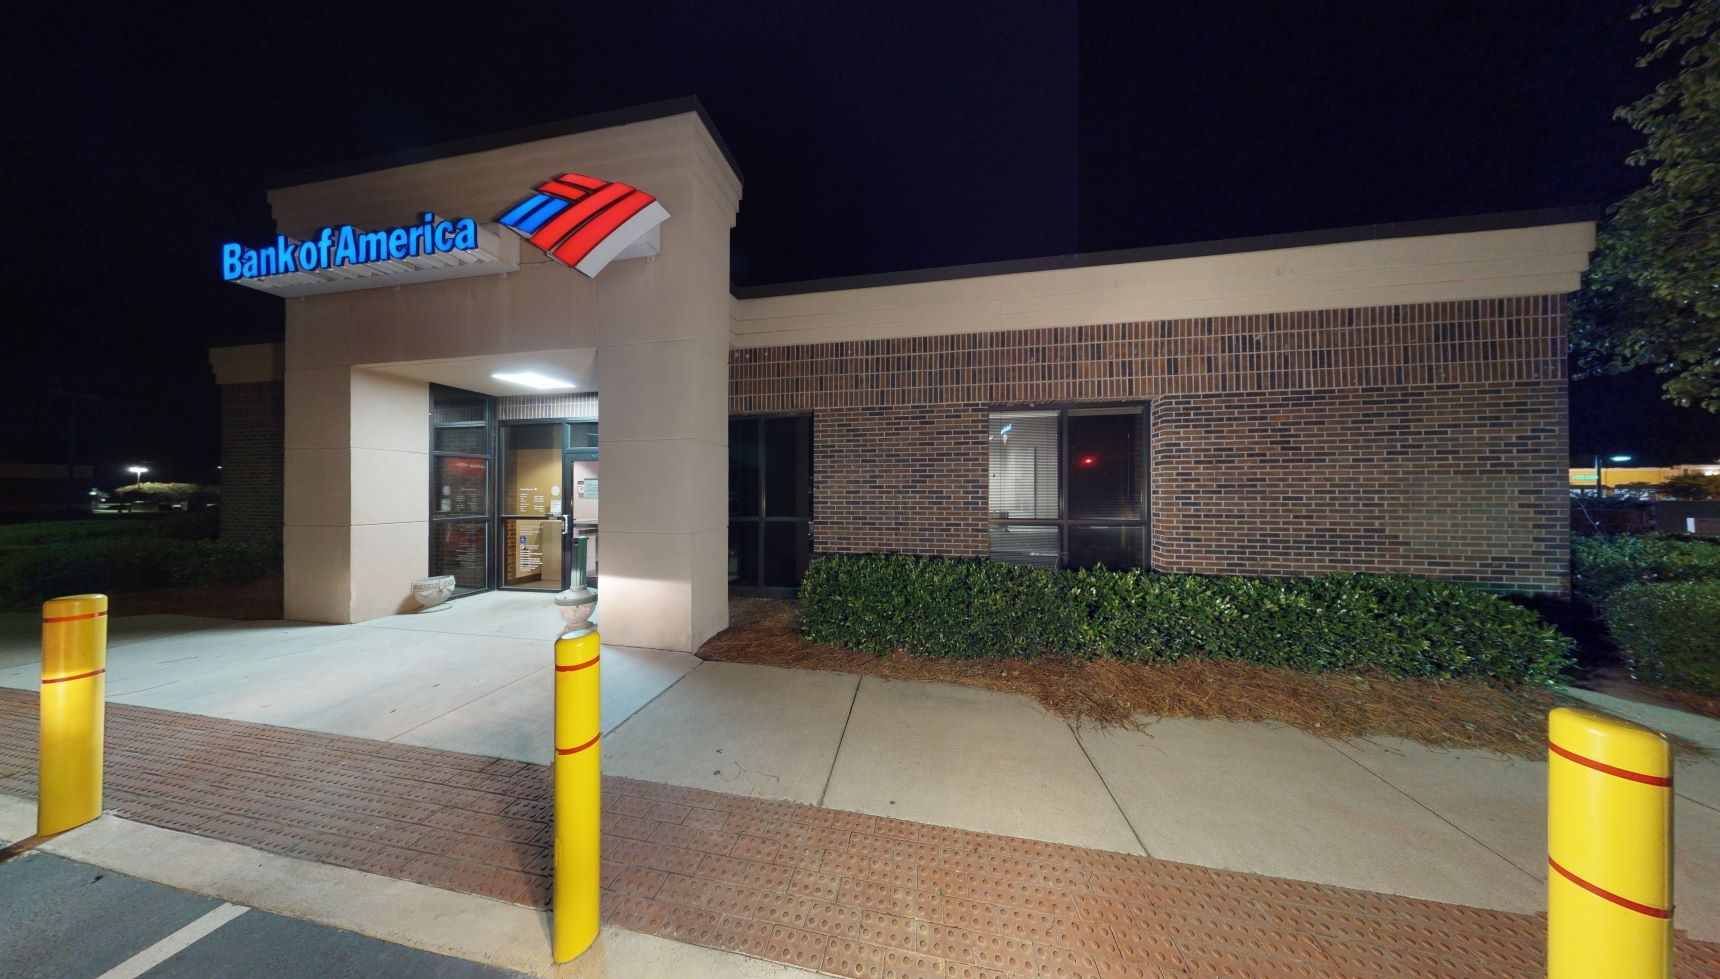 Bank of America financial center with drive-thru ATM and teller   212 Saint James Ave, Goose Creek, SC 29445